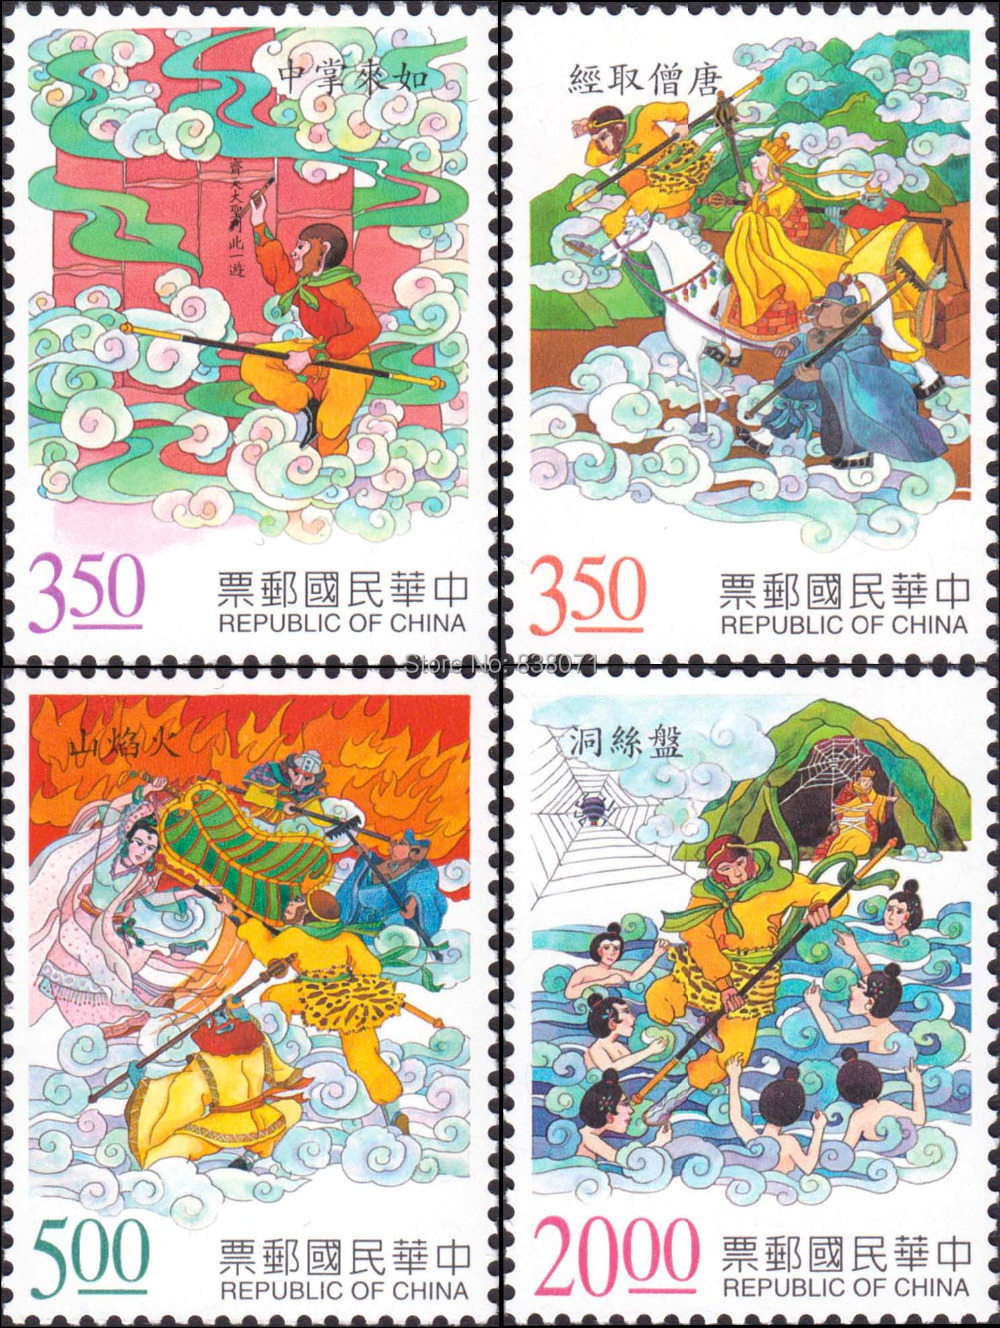 China Taiwan post stamp 1997-374 ,Journey to the west stamp,4 pieces,postage stamp collecting,postage stamps,souvenir sheet morais r the hundred foot journey